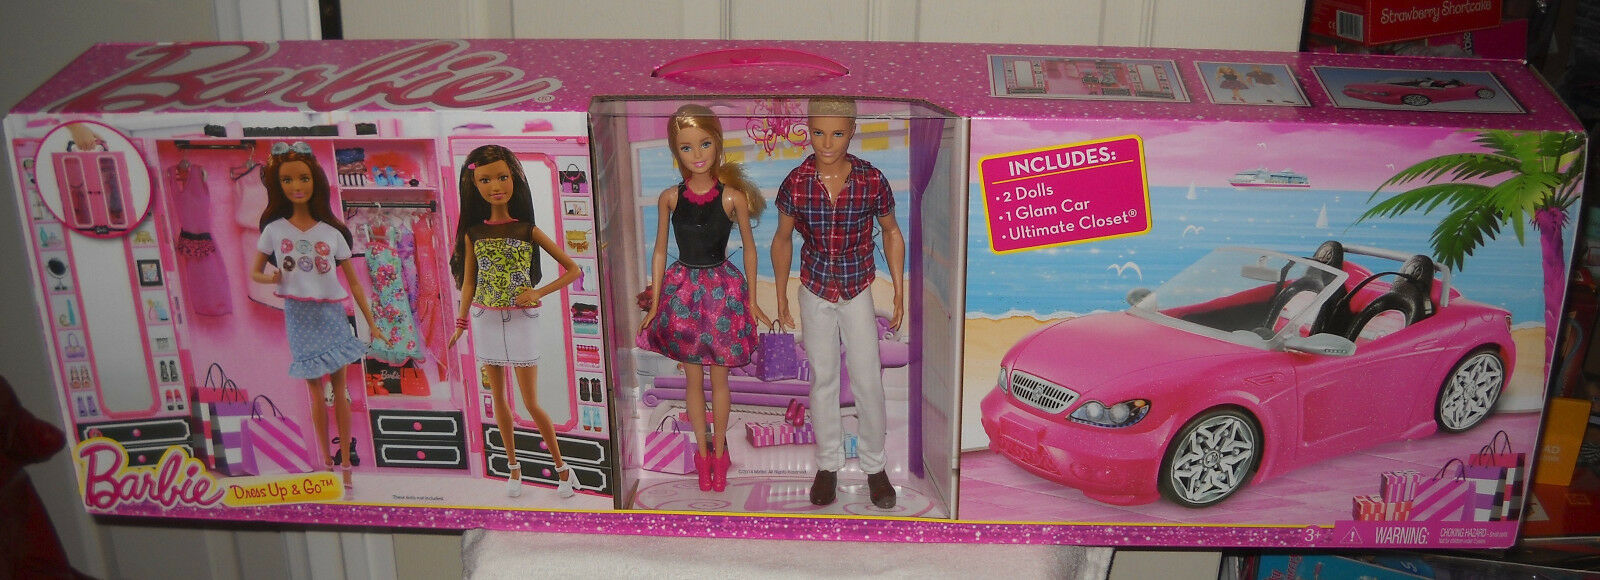 Nunca quitado de la Caja Mattel objetivo Dress Up & Go Con Barbie Y Ken, converdeible & Closet